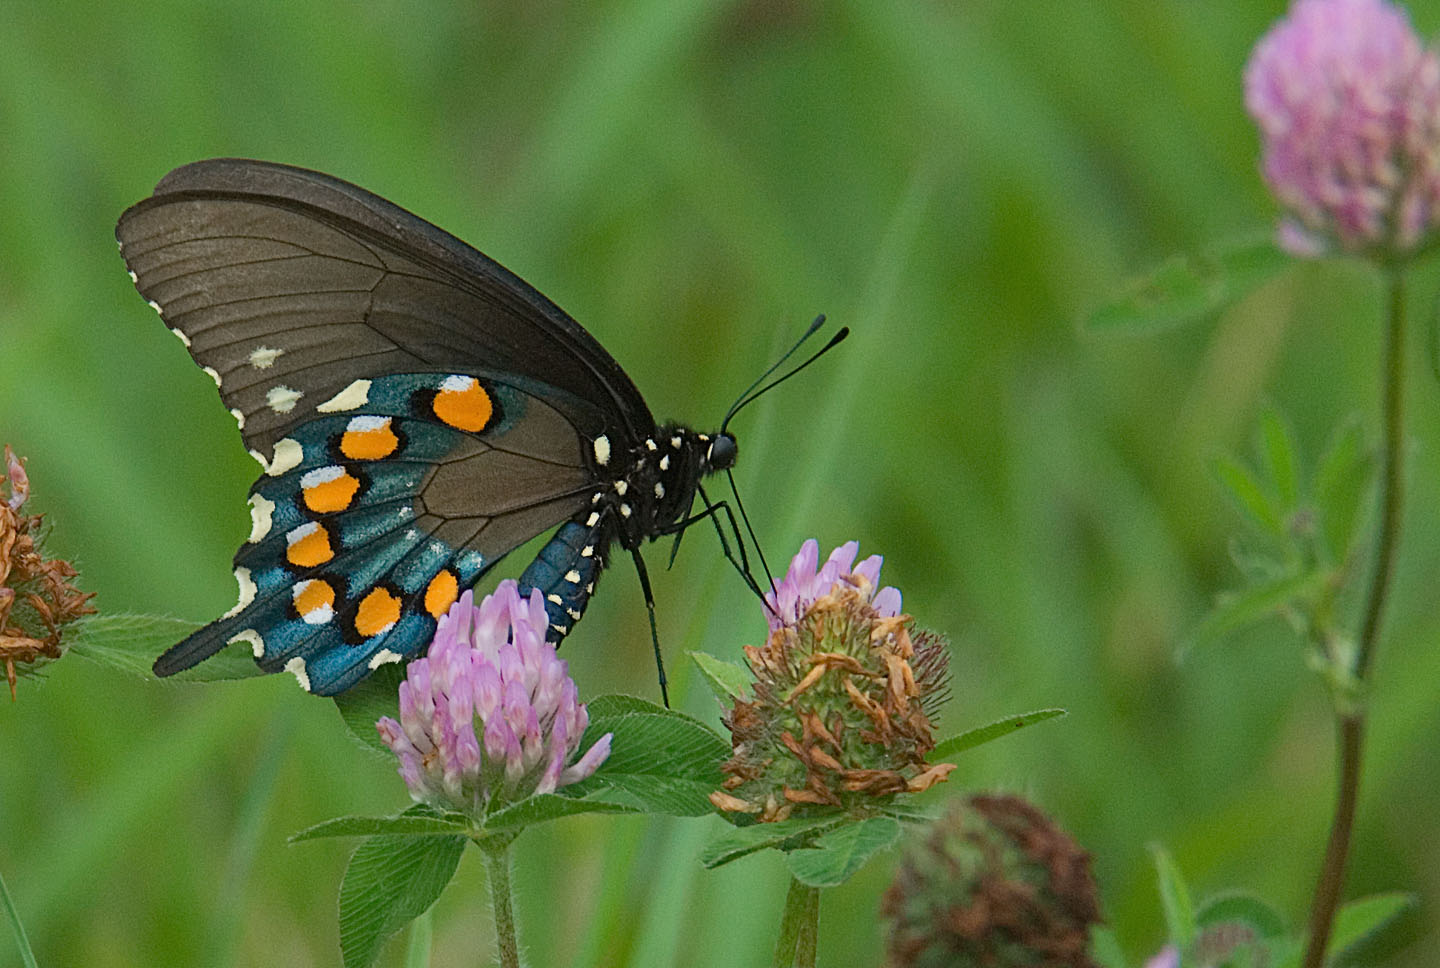 https://alabama-travel.s3.amazonaws.com/partners-uploads/photo/image/5b608dc8907e3d944800001e/pipevine_swallowtail___jerry_green_photo_for_newsletter.jpg